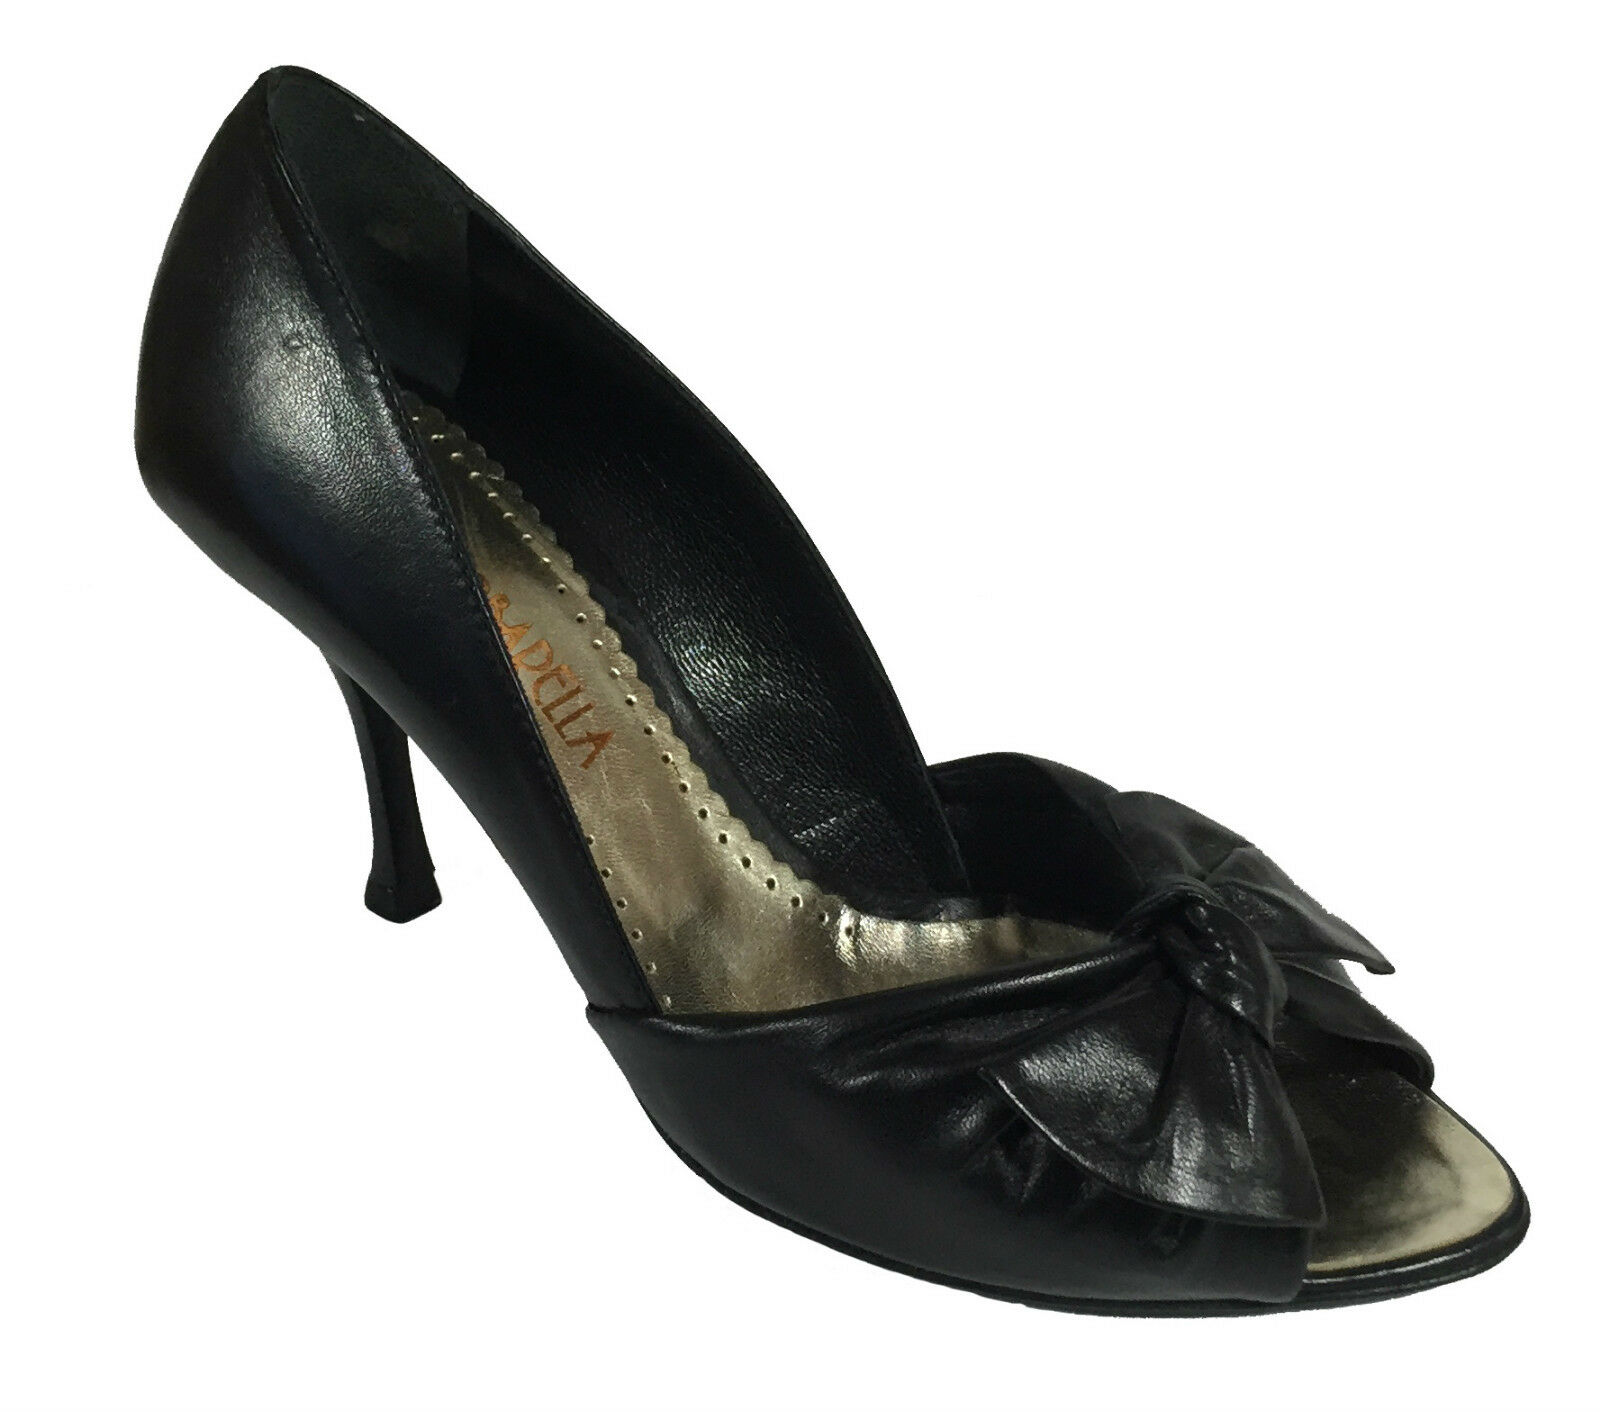 BARBARELLA Court Court Court shoes bluent women's leather black heeled tall and bow 85a523